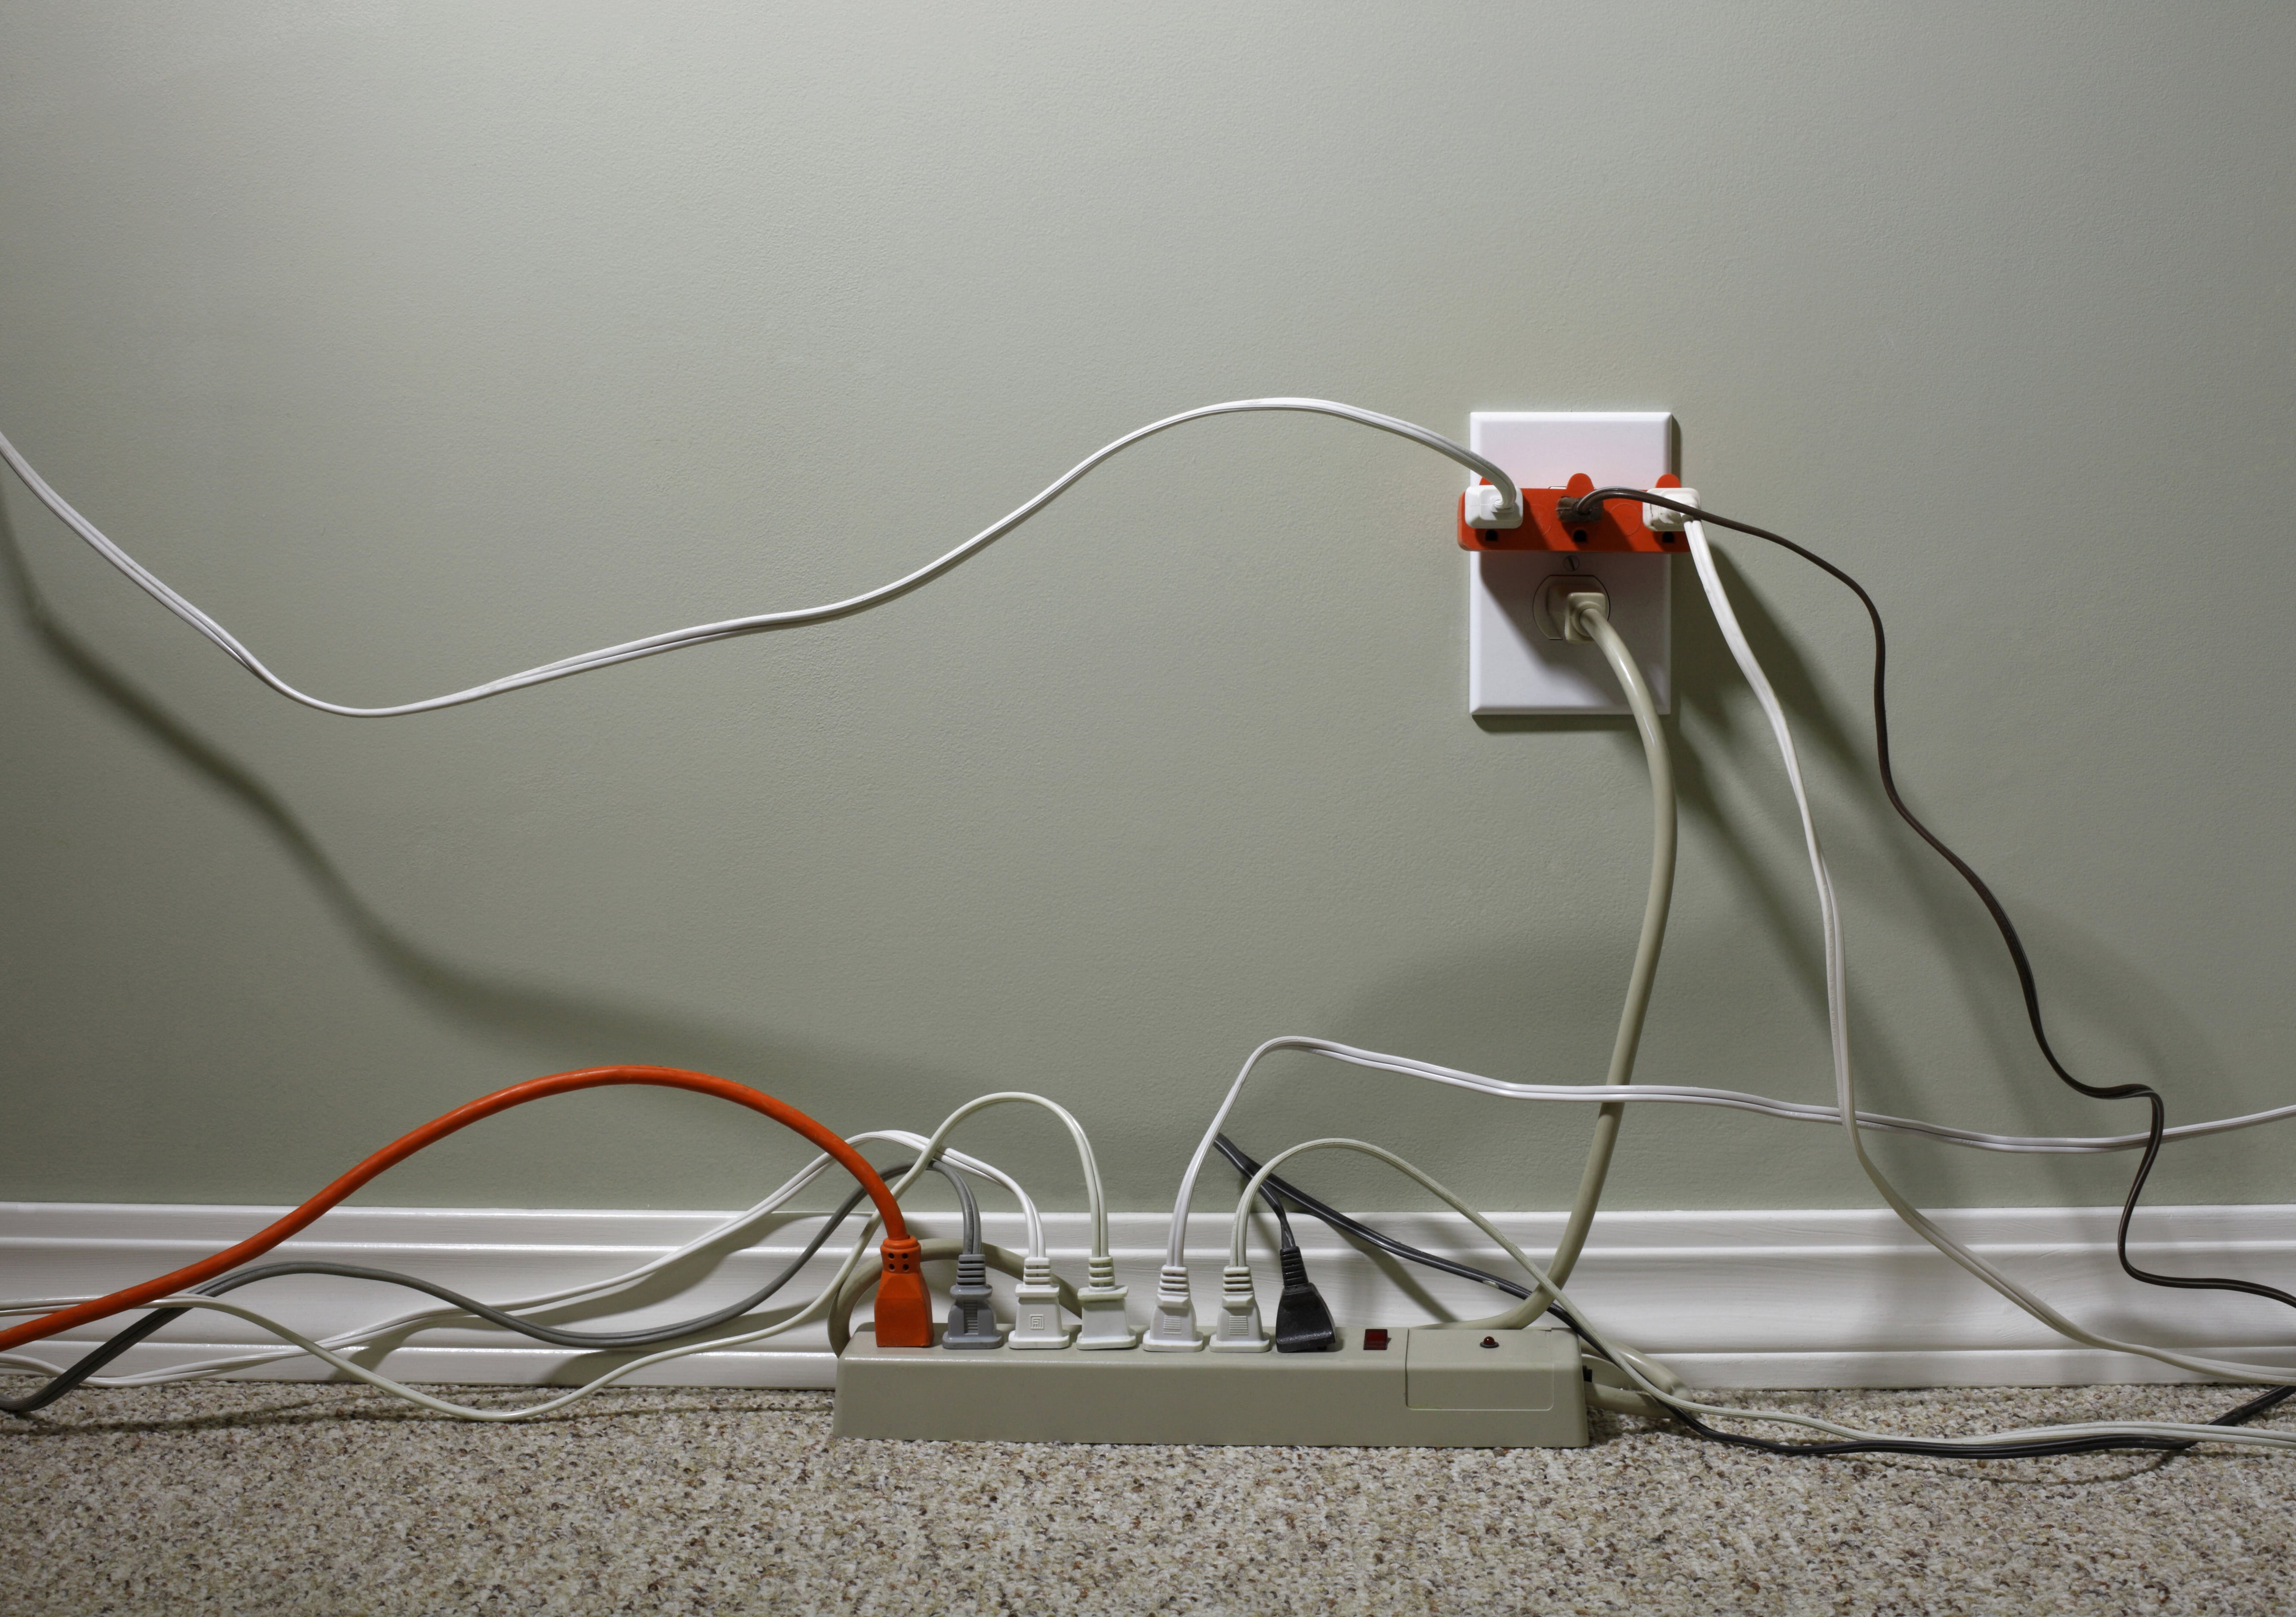 Extension Cords, Outlets